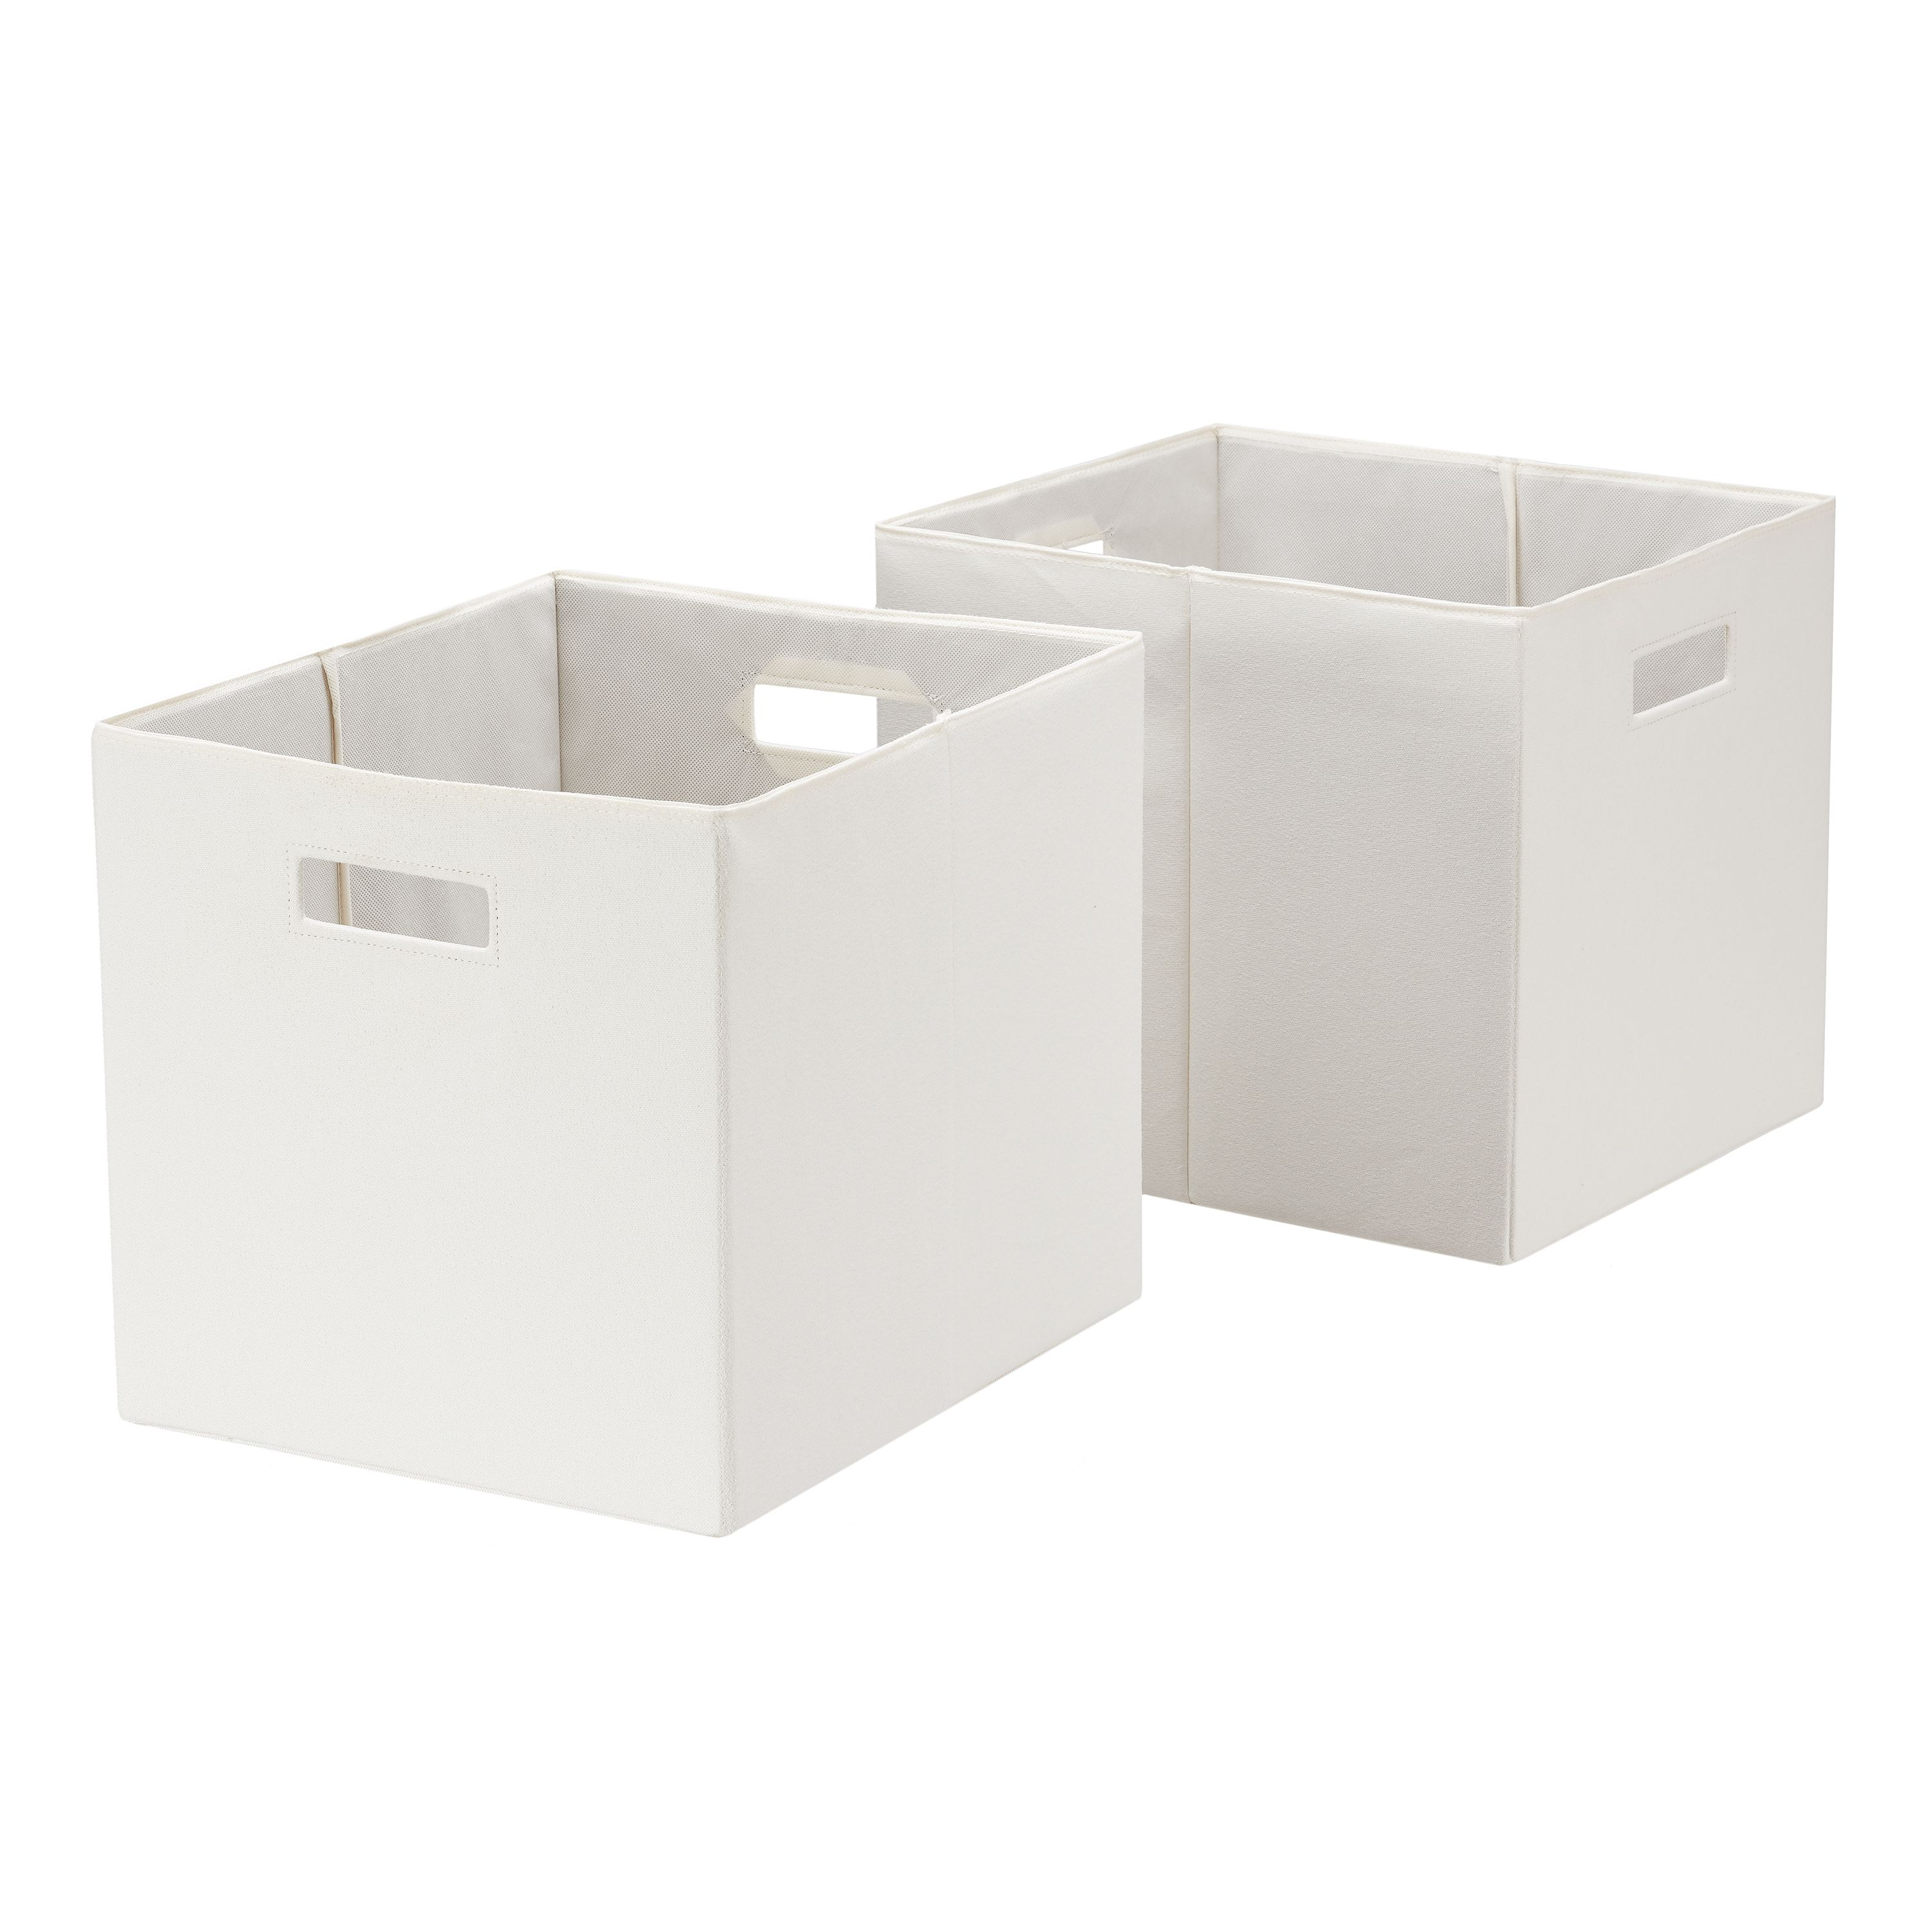 Better Homes Gardens Fabric Cube Storage Bins 12 75 X 12 75 Set Of 2 Vanilla Dream Walmart Com In 2020 Cube Storage Bins Storage Bins Cube Storage